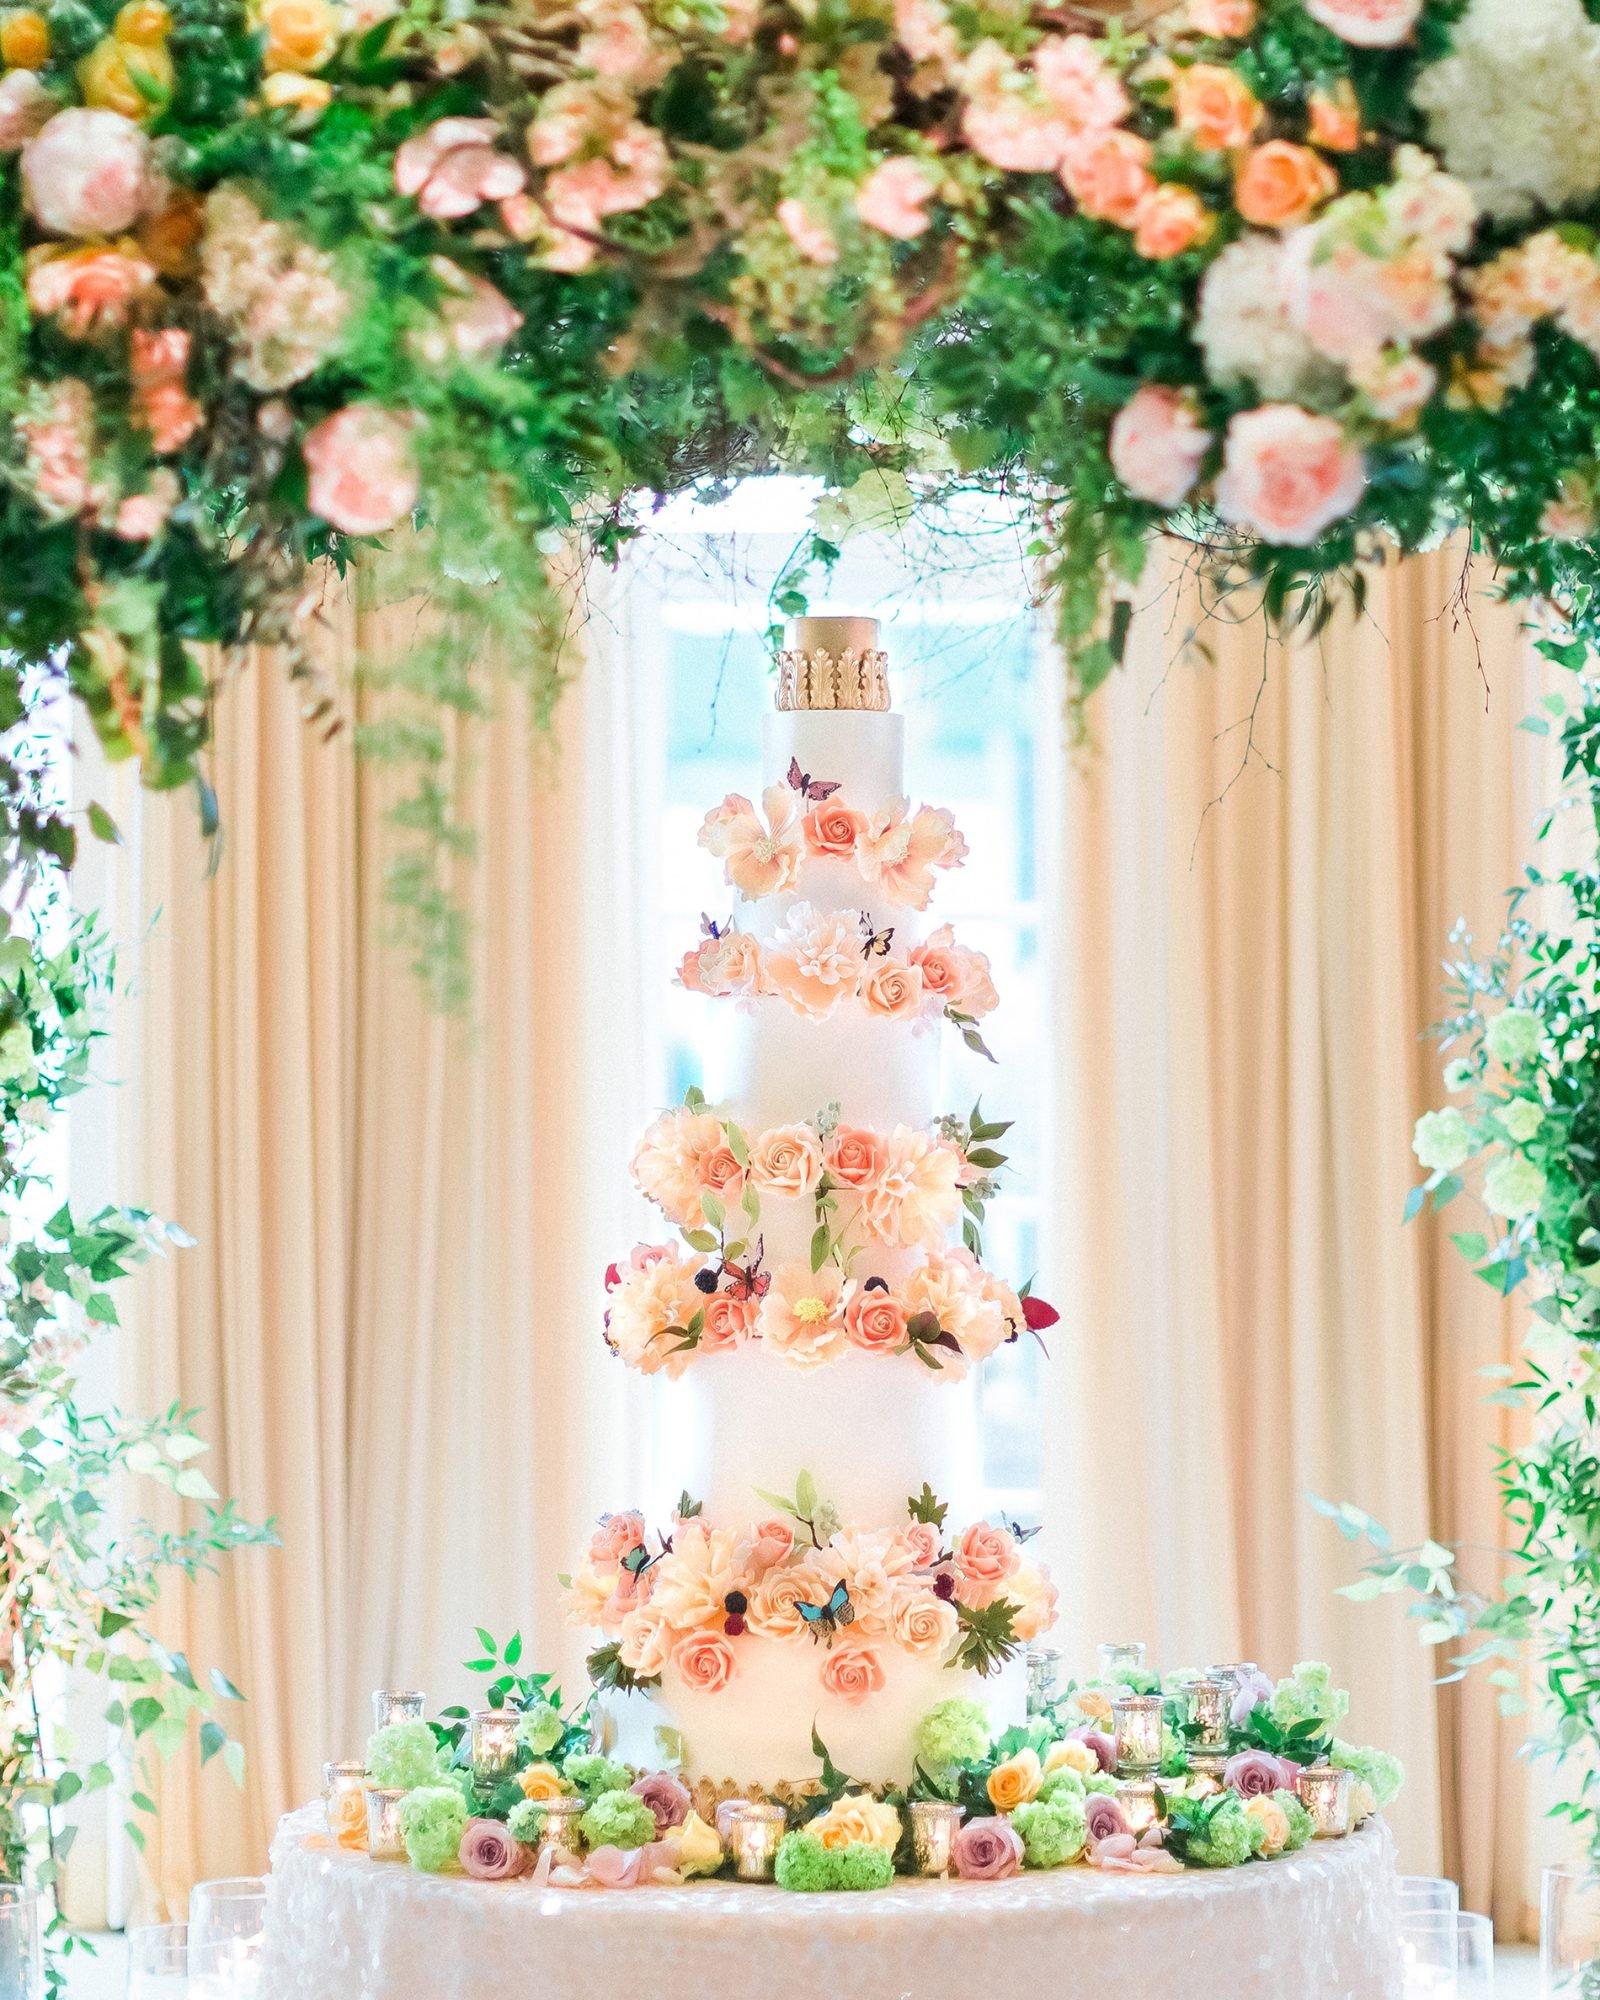 glamorous wedding ideas tall confection cake